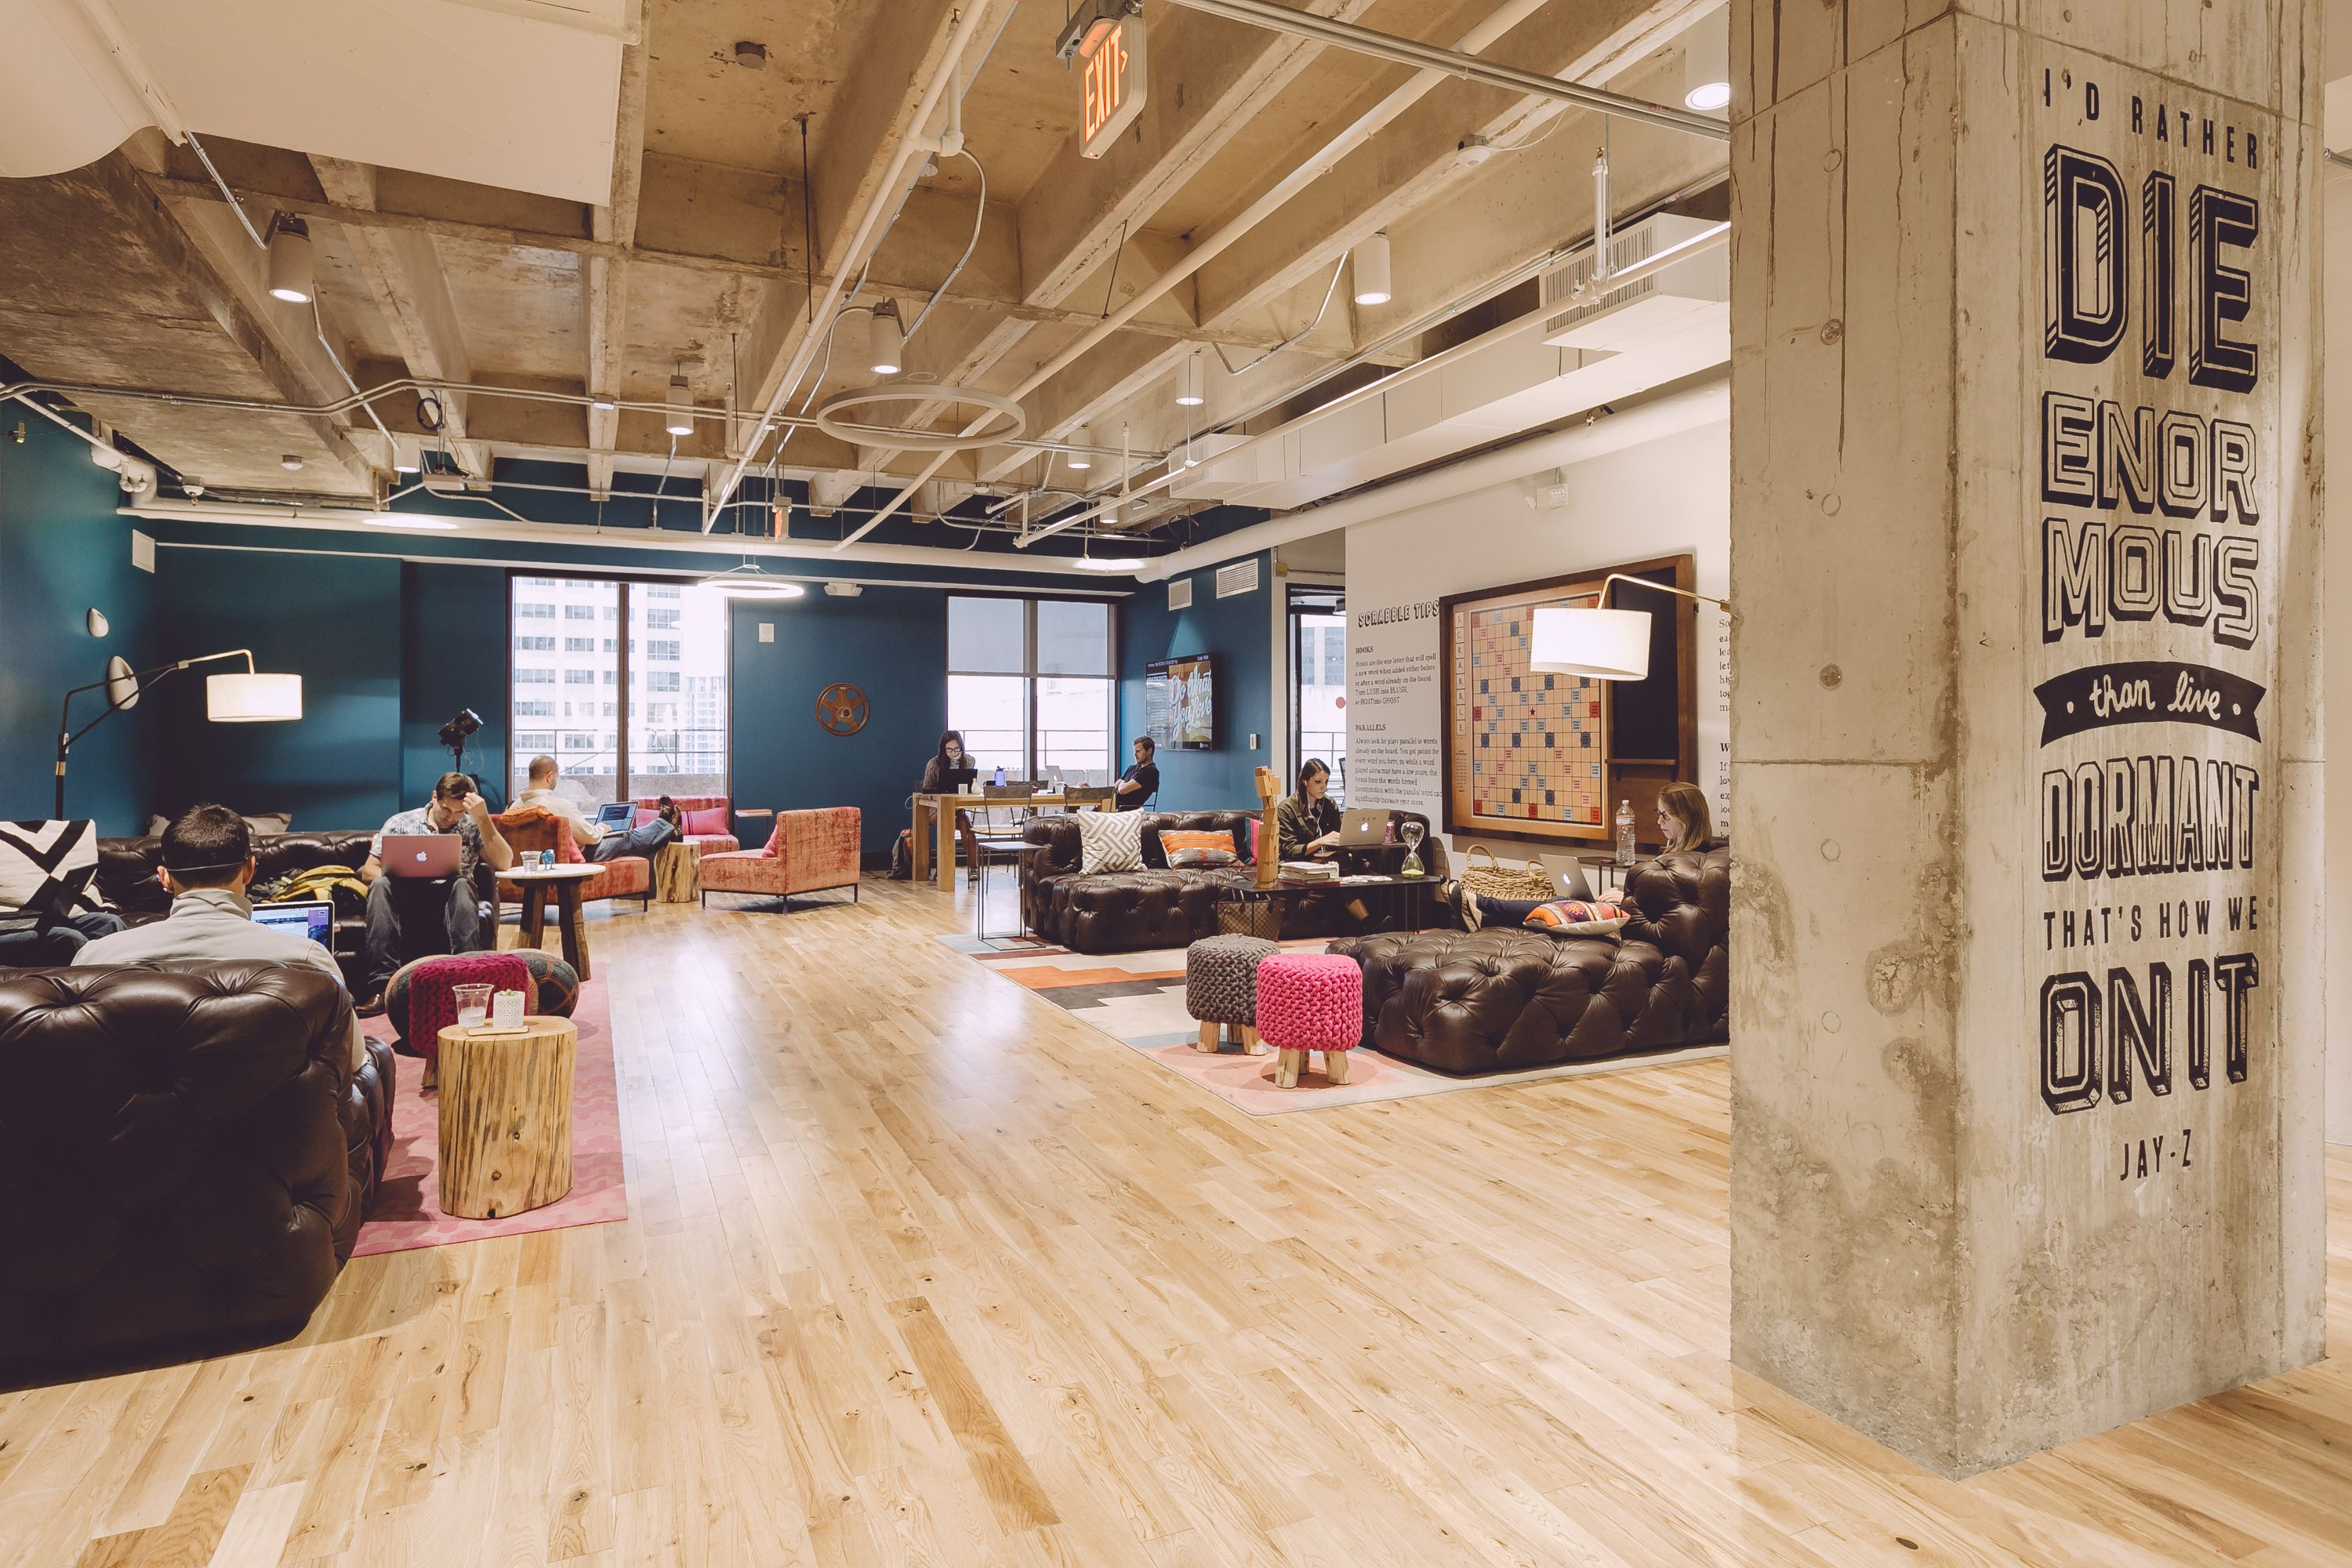 The great outdoors austin congress - Between Private Offices Custom Art And Unlimited Coffee Wework Congress Is The Downtown Austin Coworking Space You Ve Been Looking For